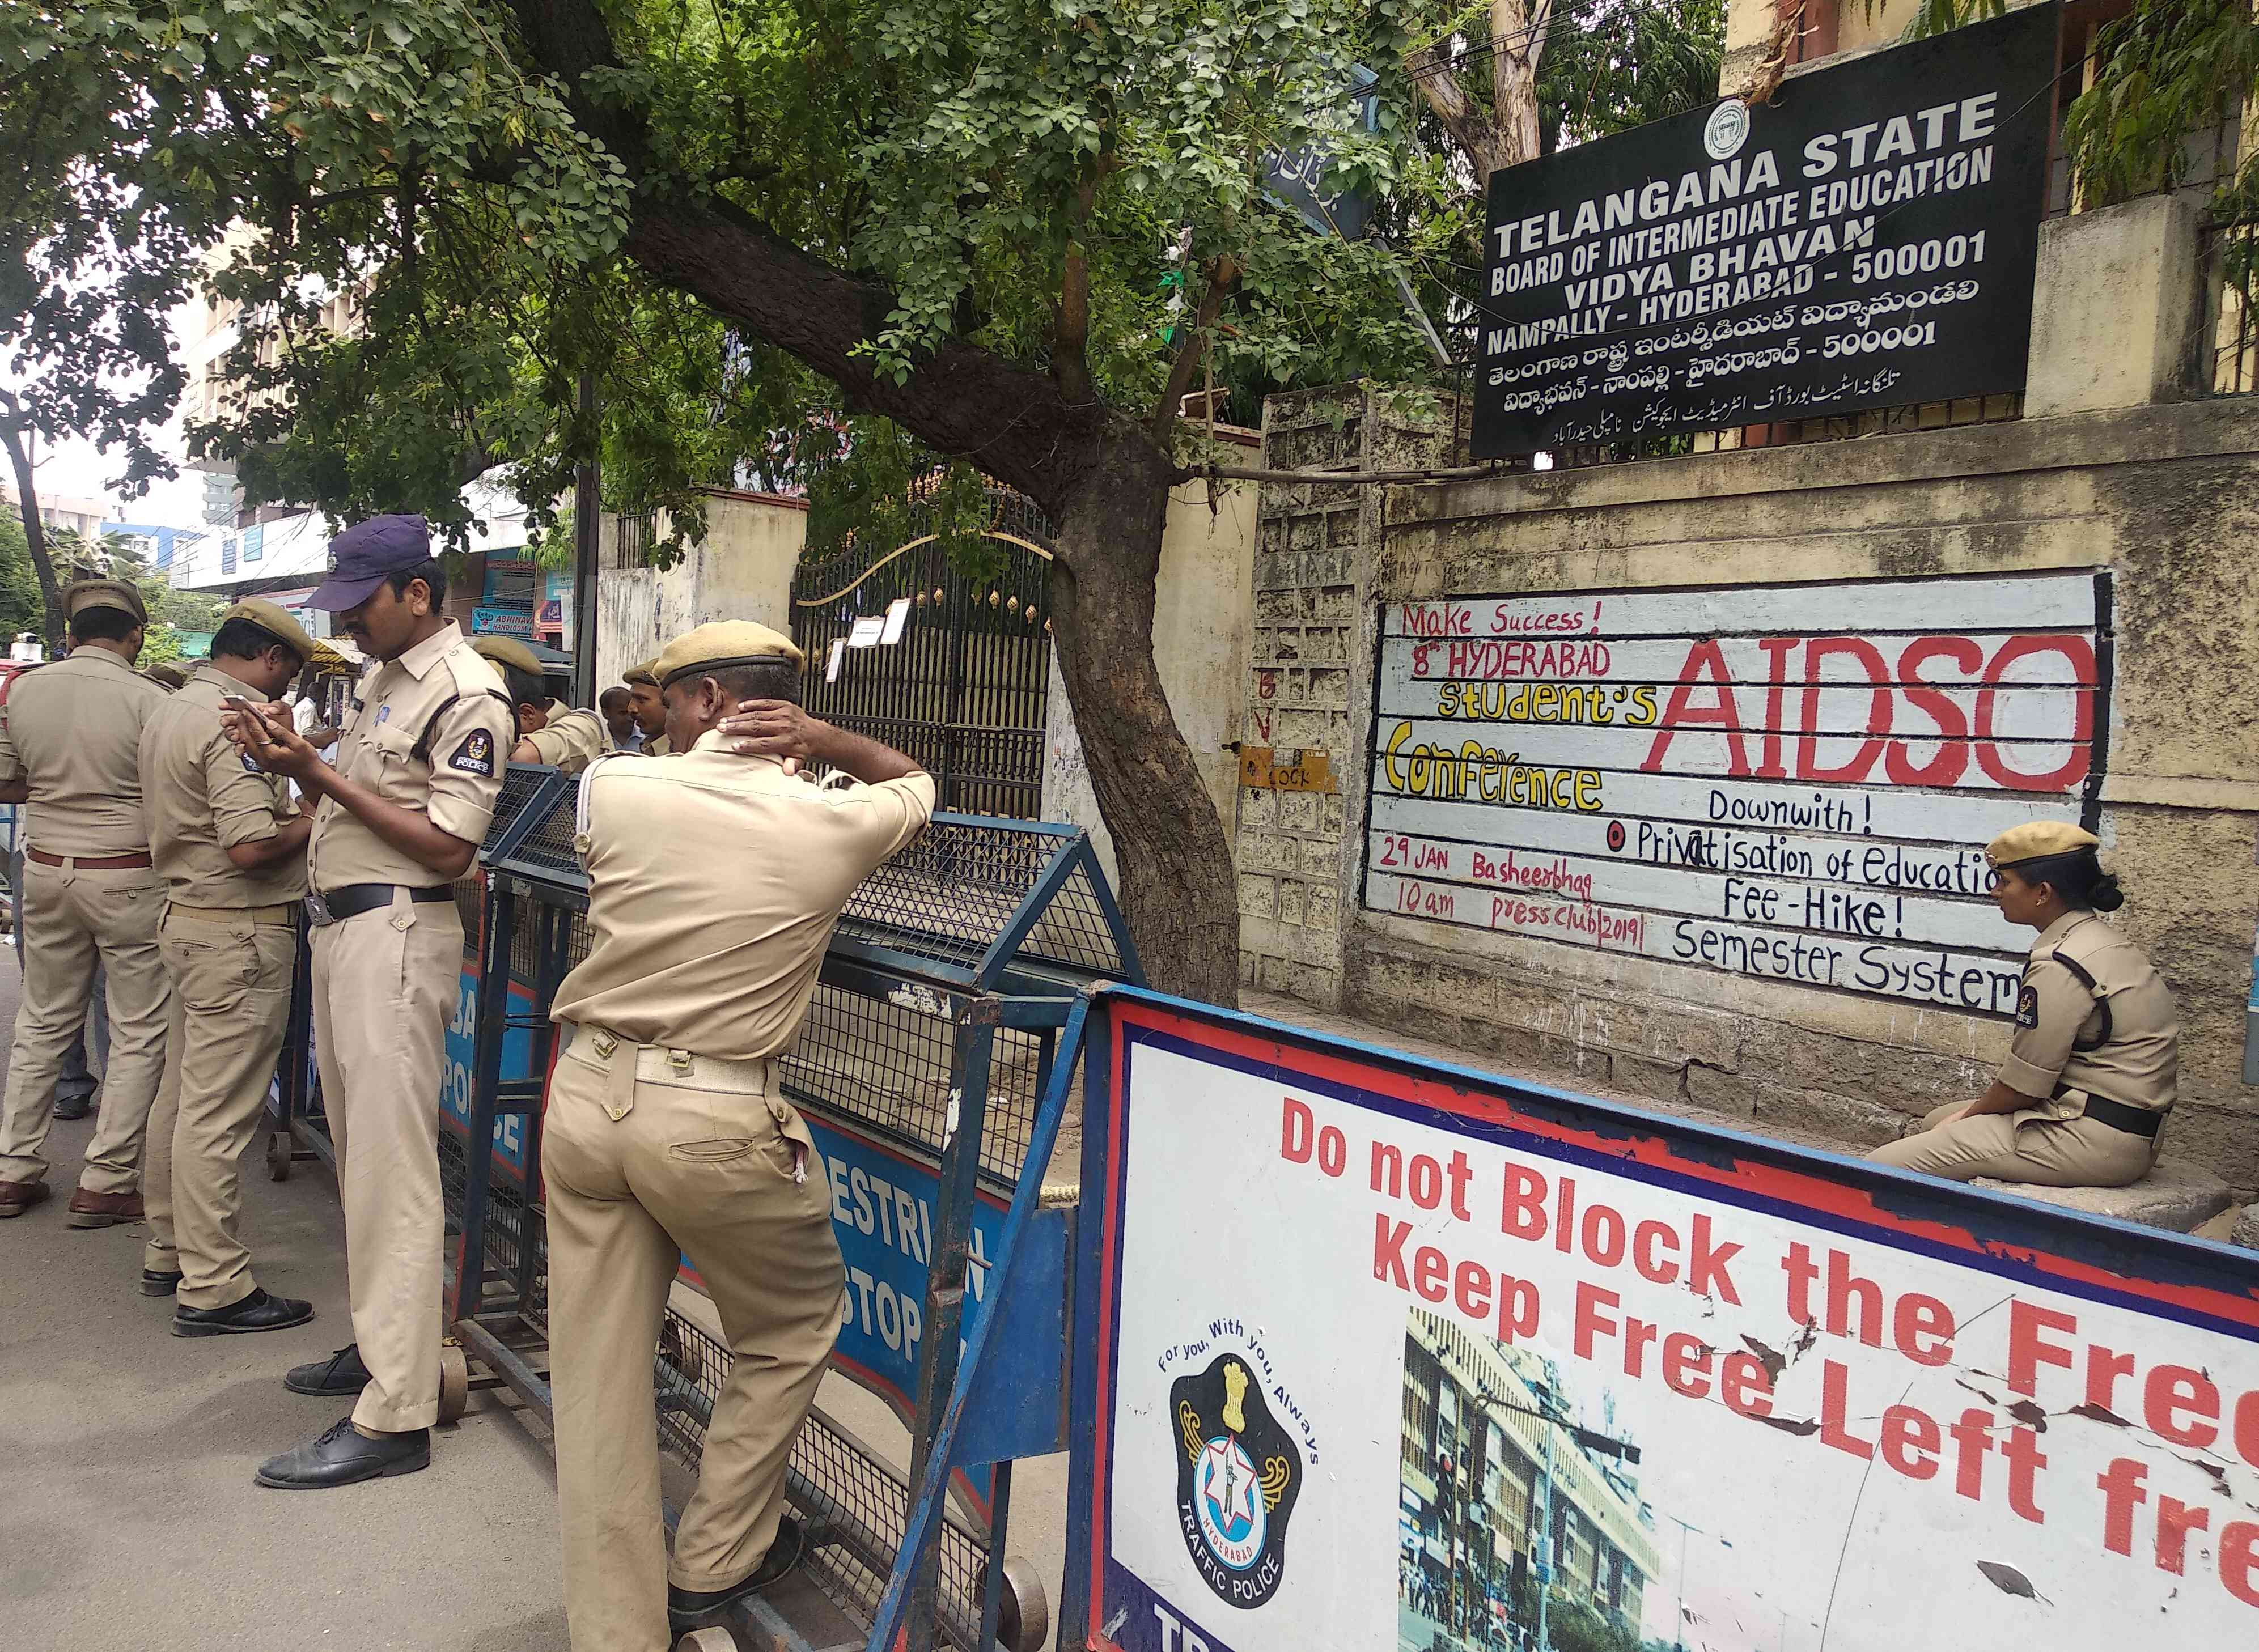 Police guard the Telangana State Board of Intermediate Examination in Hyderabad. Photo credit: S Senthalir